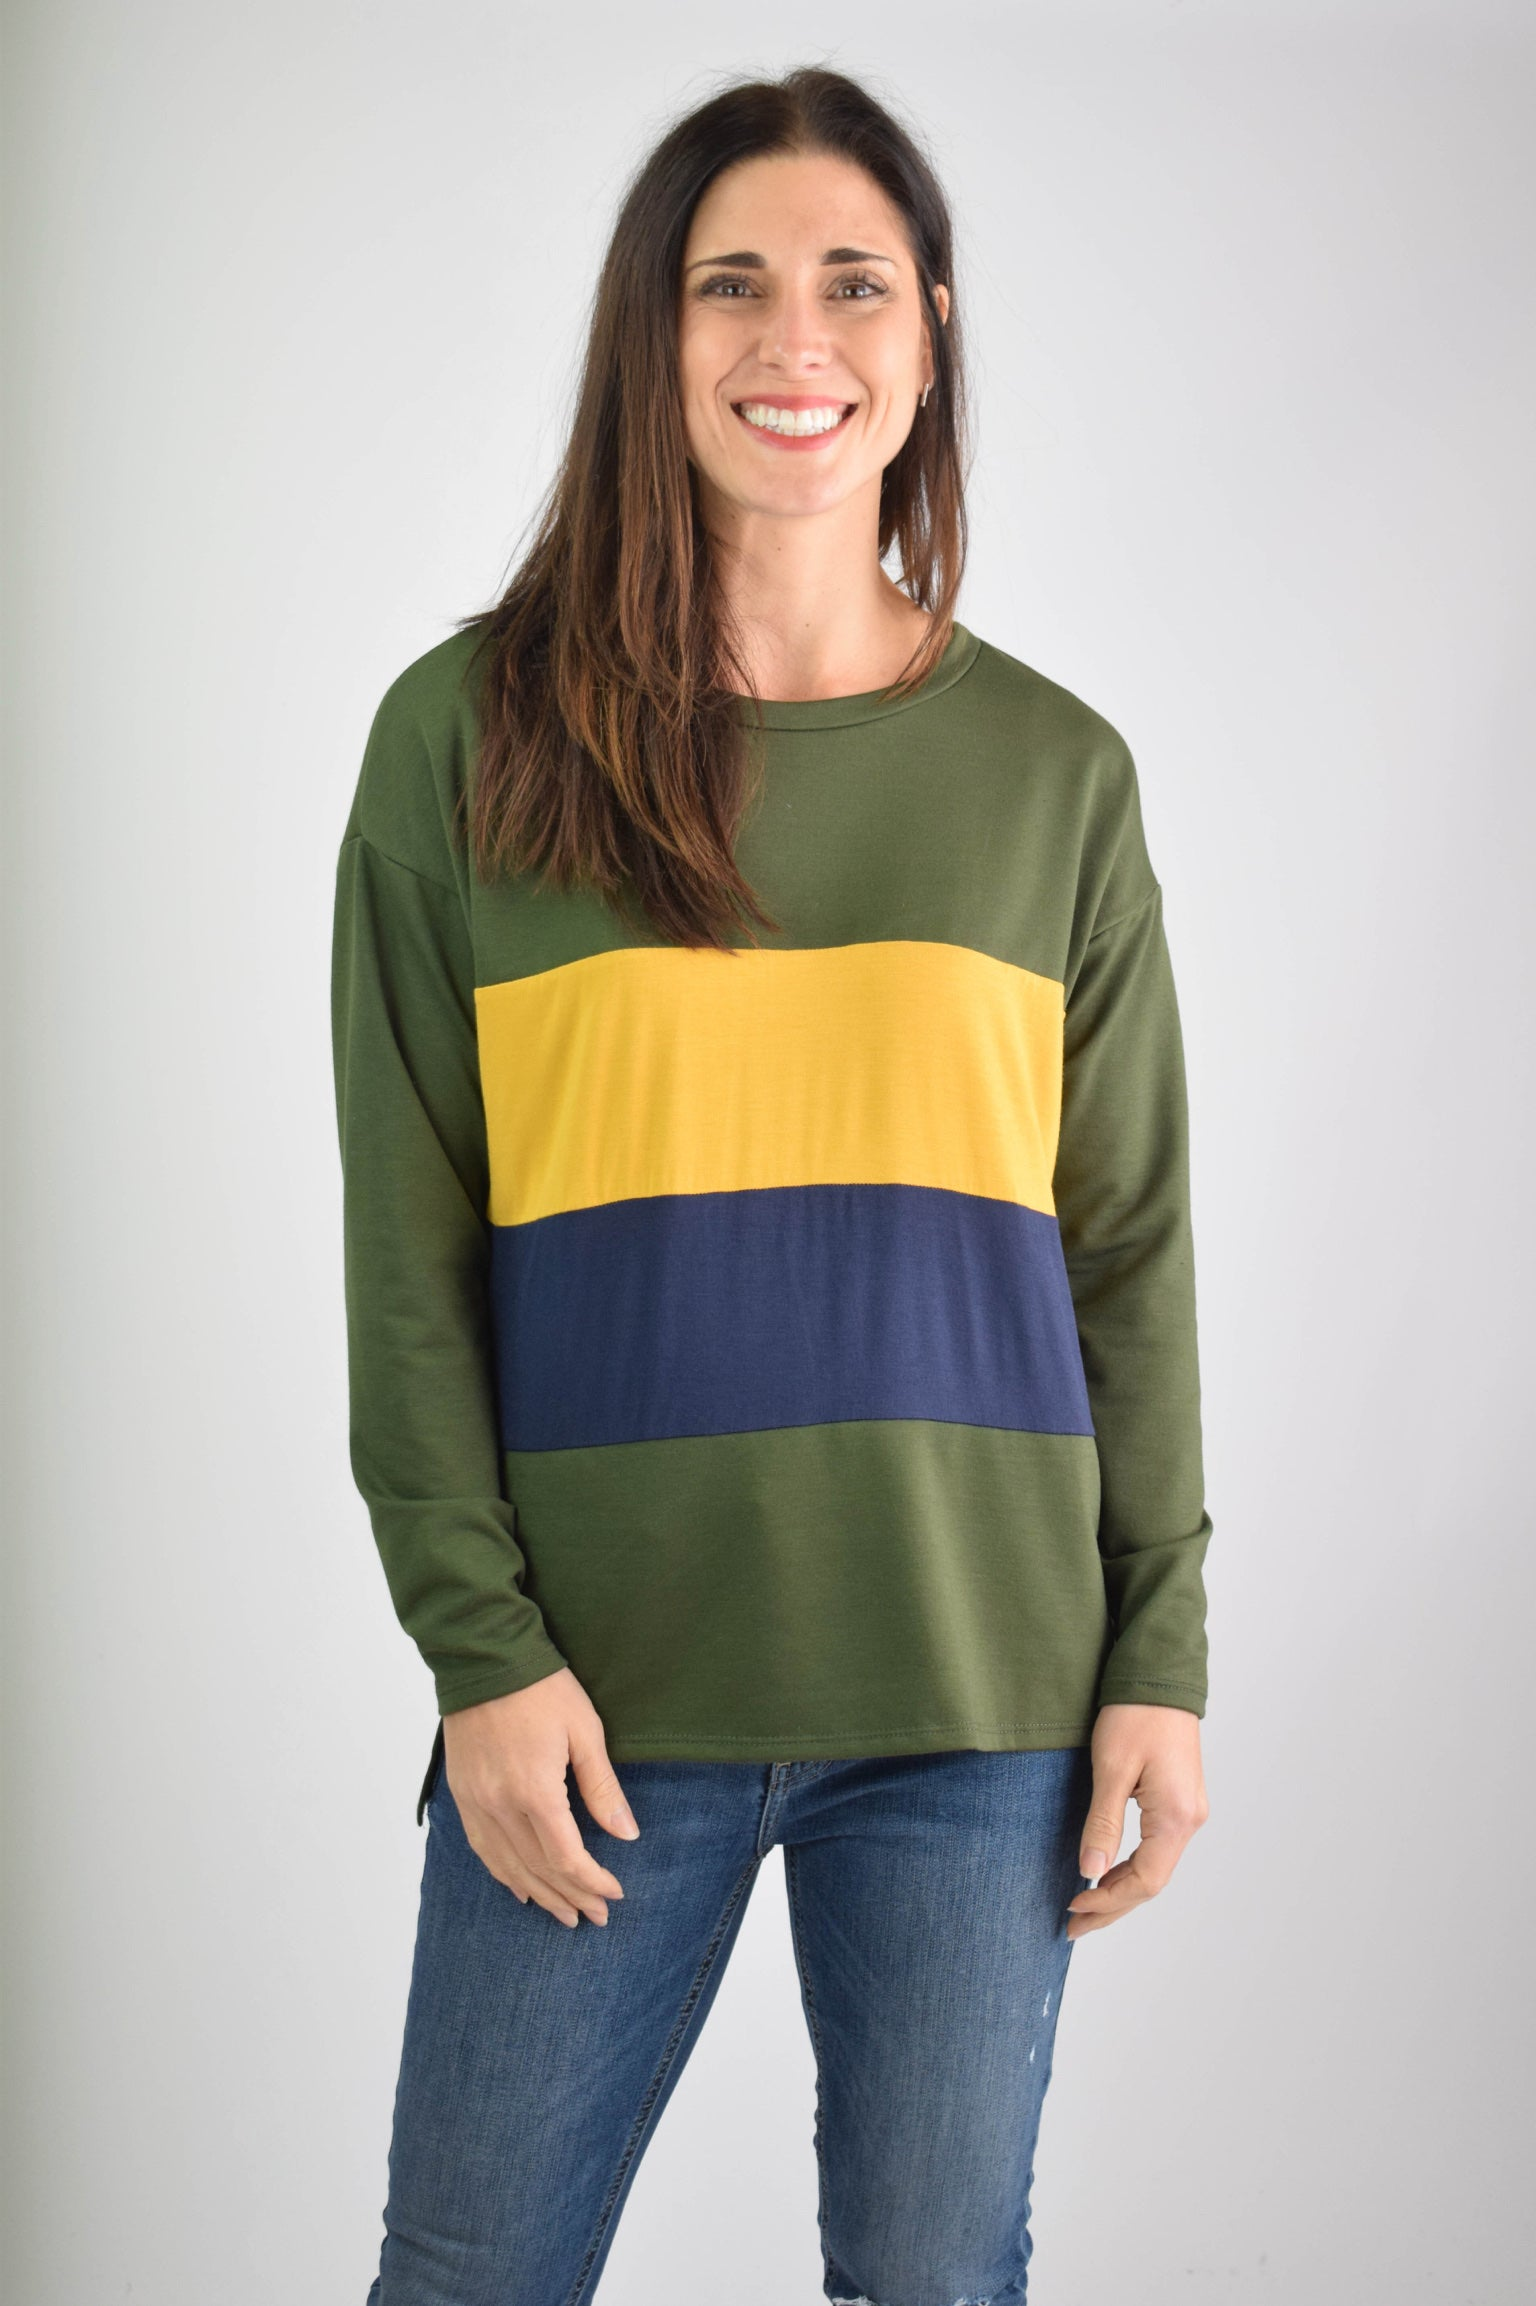 Endless Warmth Olive/Mustard/Navy Color Block Top